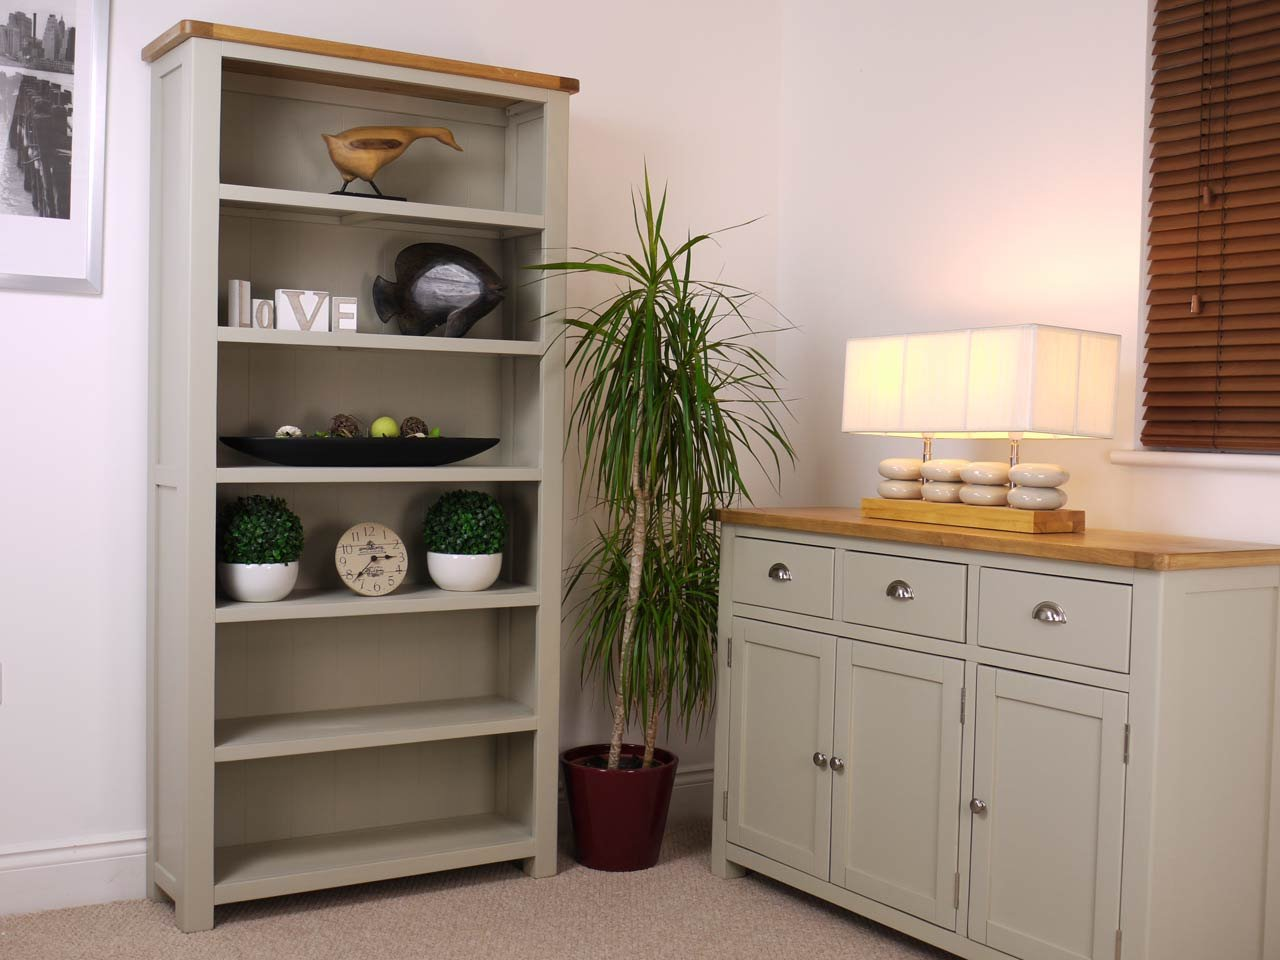 Aspen Painted Oak Sage/Grey Bookcase/Tall 6 Shelf Bookcase/Storage Display  Unit: Amazon.co.uk: Kitchen U0026 Home